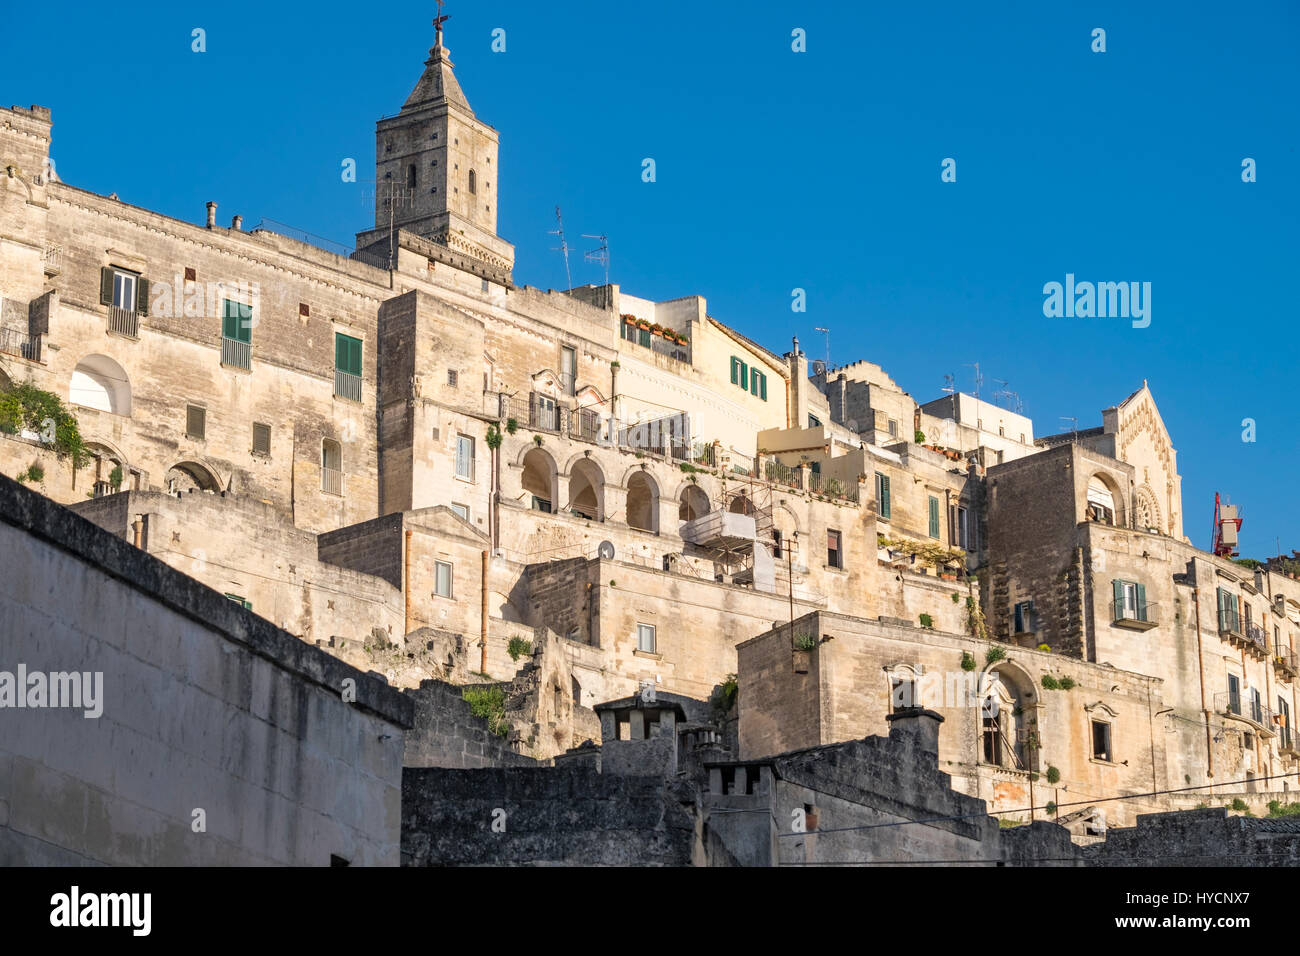 Cityscape of Matera, Italy, at sunset. World Heritage Site and European Capital of Culture for 2019 - Stock Image